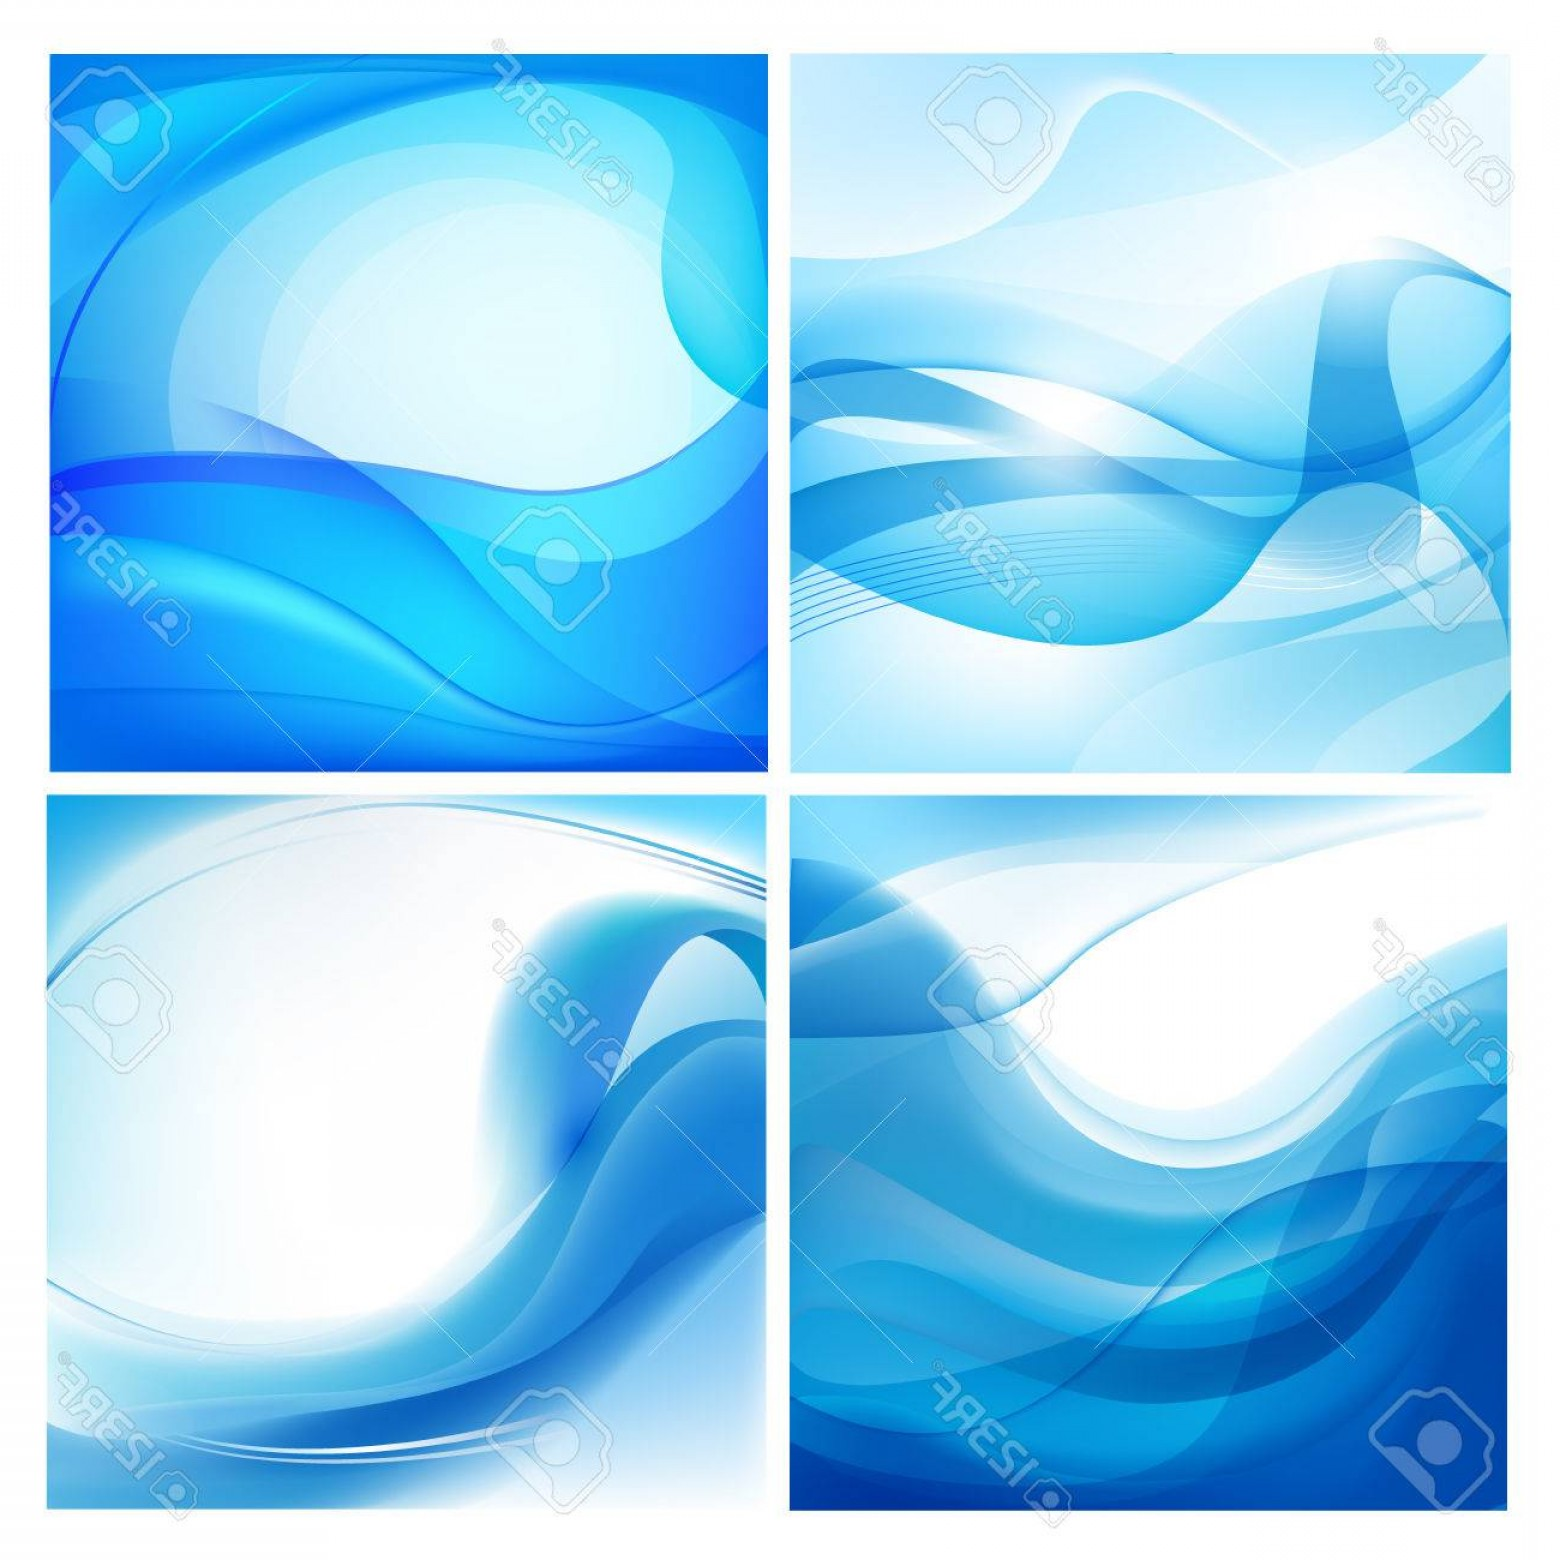 Water Flow Vector: Photostock Vector Vector Set Of Blue Wavy Backgrounds Water Flow Stream Abstract Wallpaper